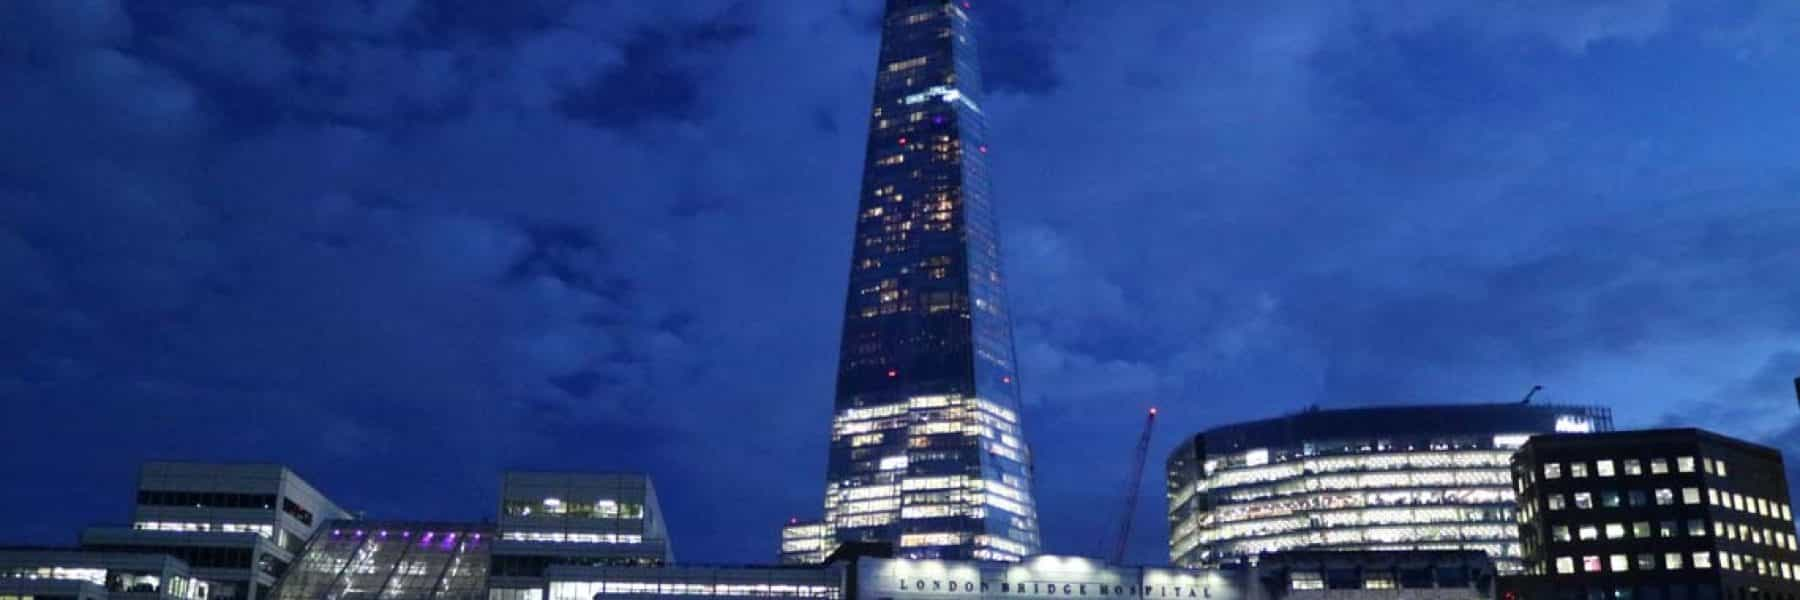 The Shard & London Bridge City